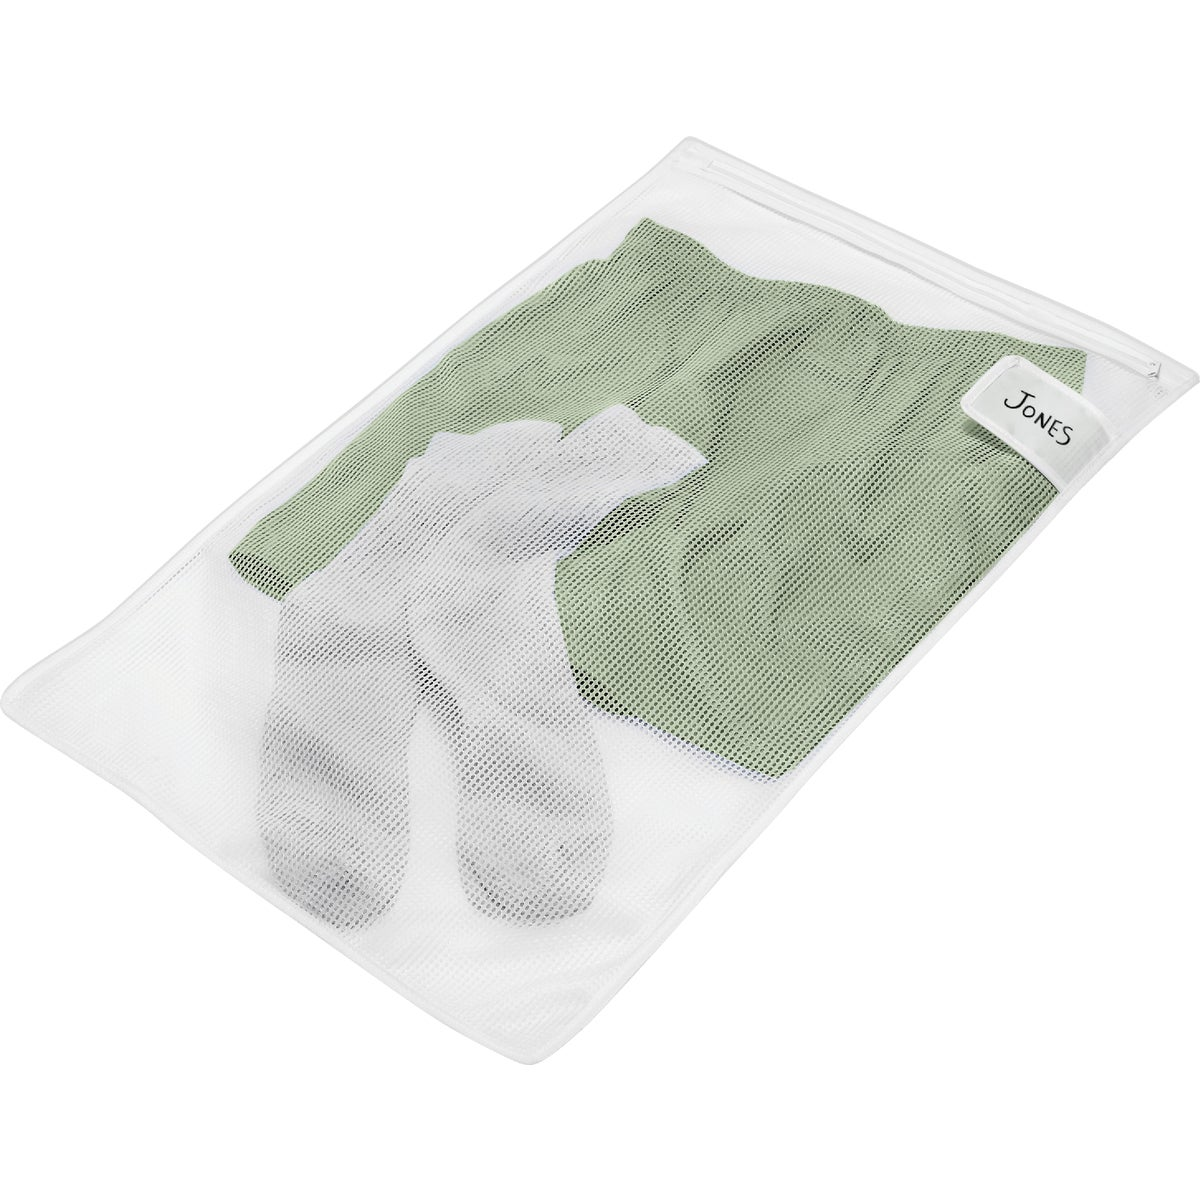 SWEATER BAG - 1202018 by Homz  Seymour